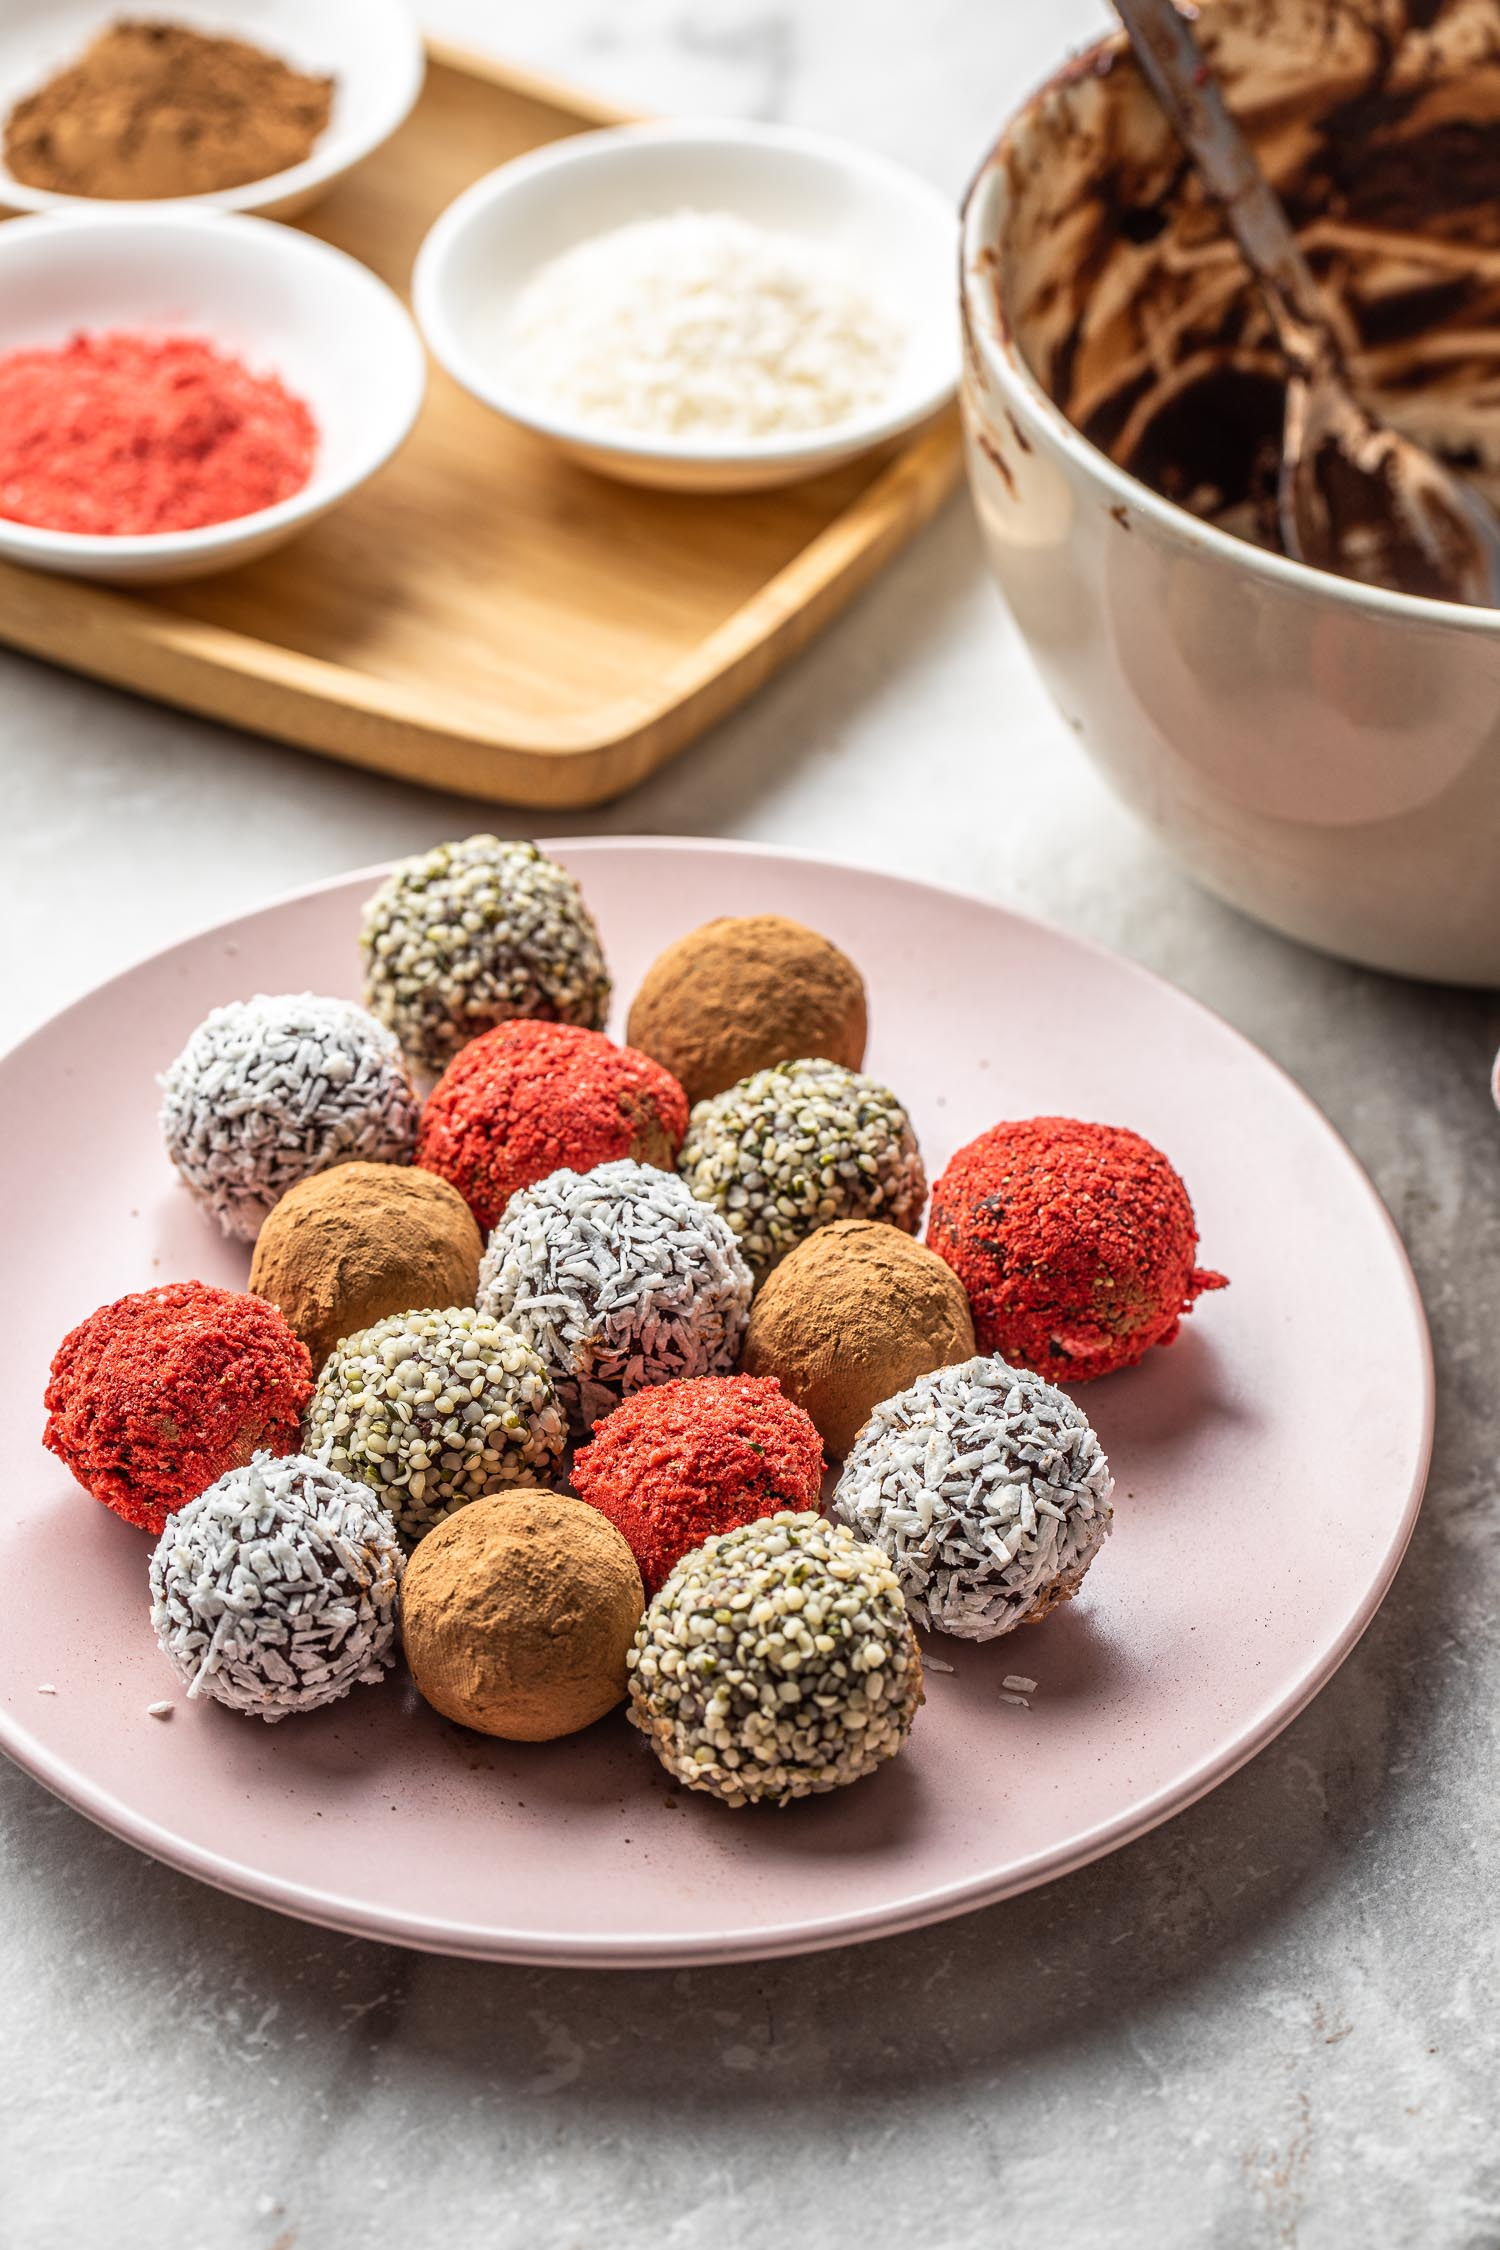 pink plate full of colorful vegan and gluten free chocolate and avocado truffles coated in coconut, hemp seeds, crushed freeze dried strawberries, and truffles coated in chocolate cocoa and cacao powder with toppings in bowls to the back